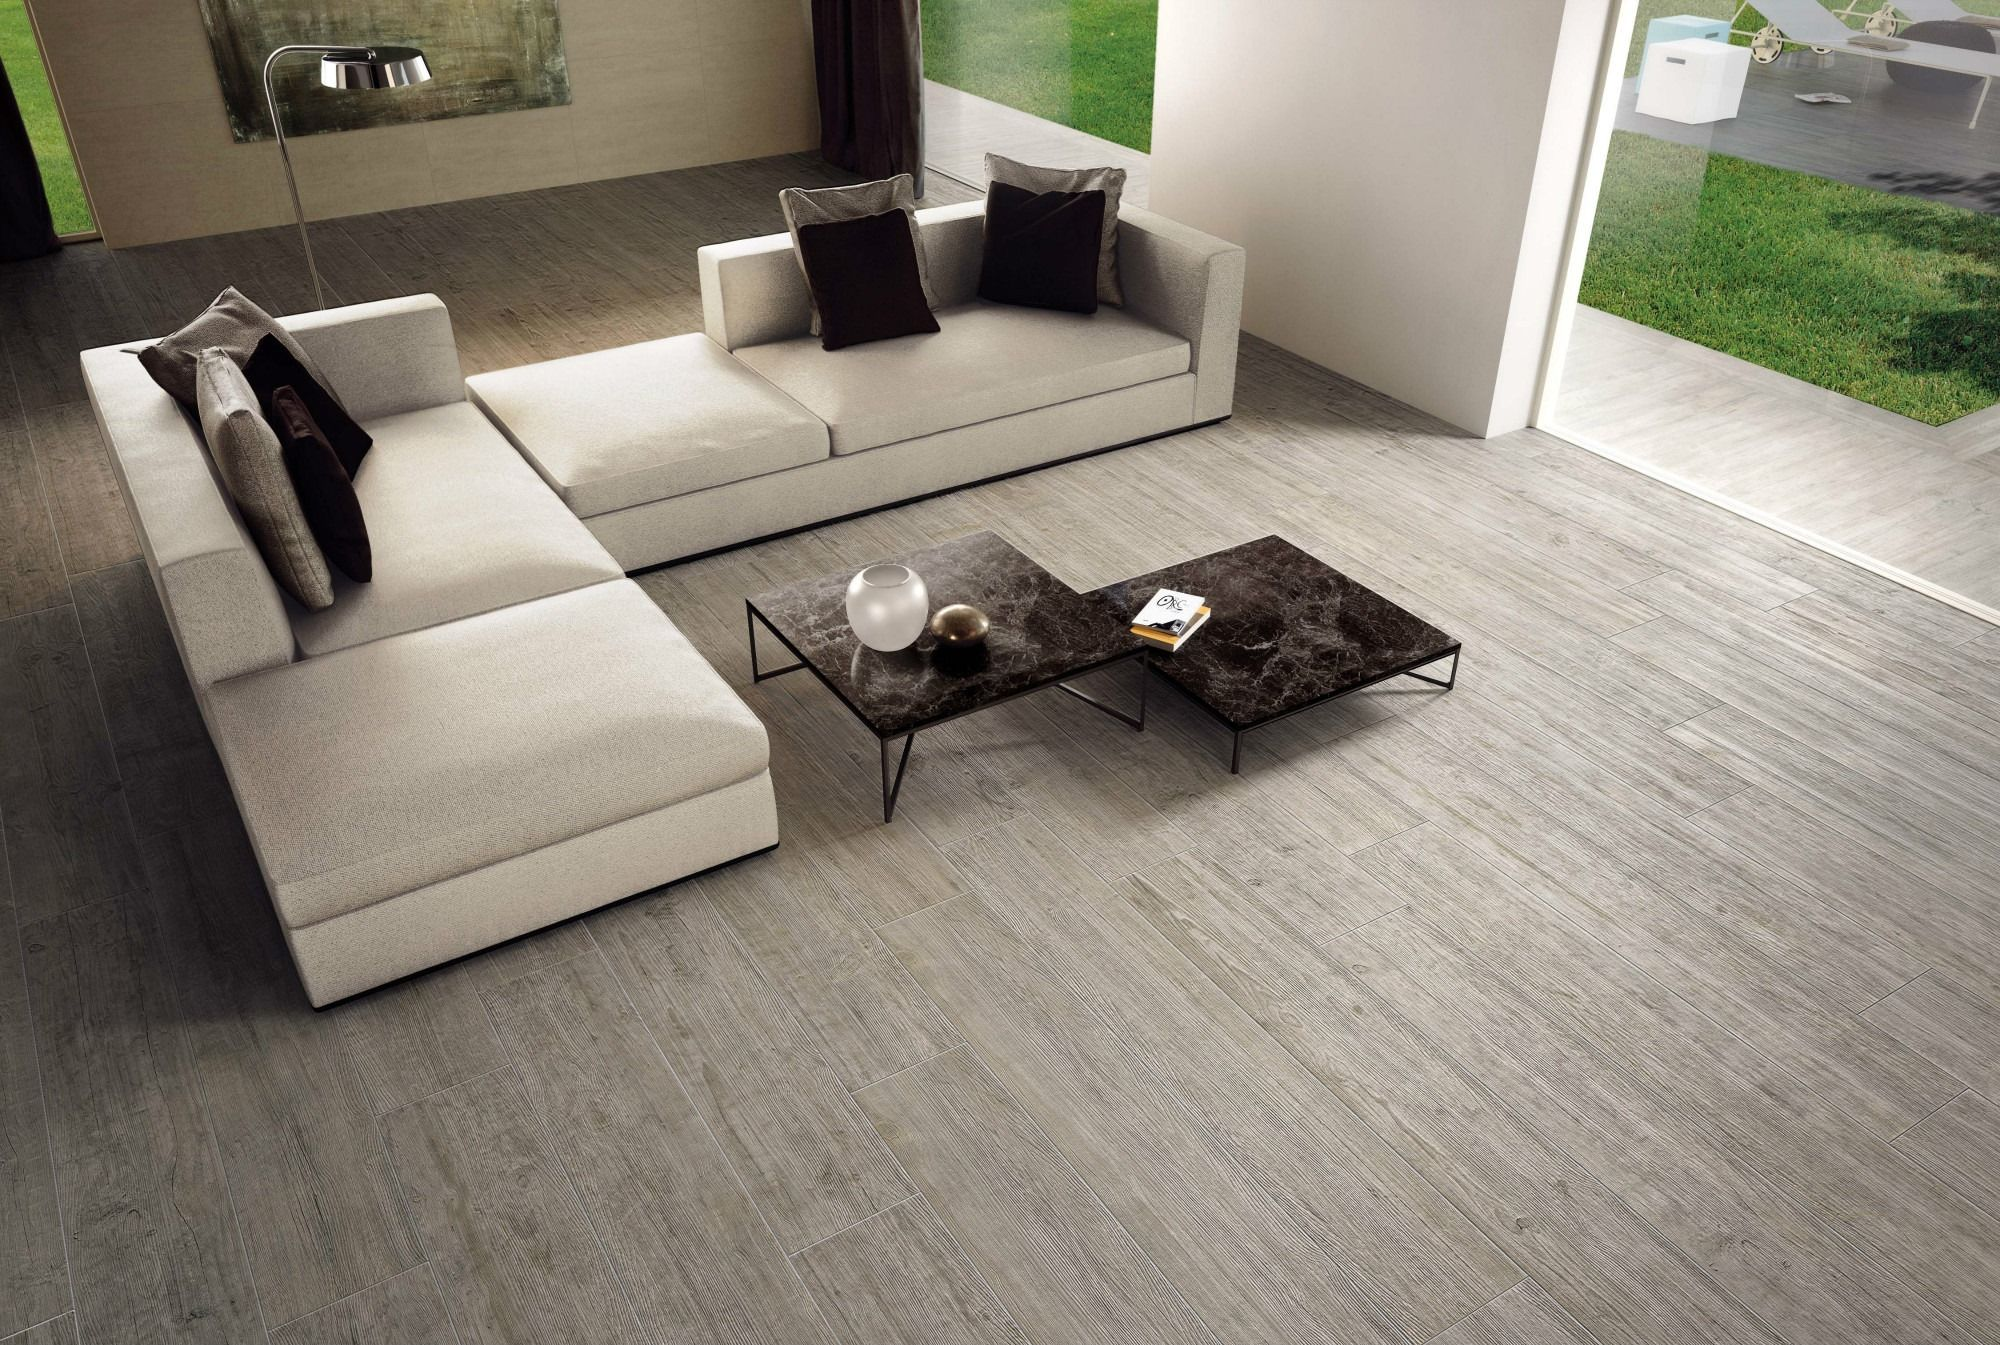 minoli - axis - floor tiles: axis silver fir 25 x 150 cm. this